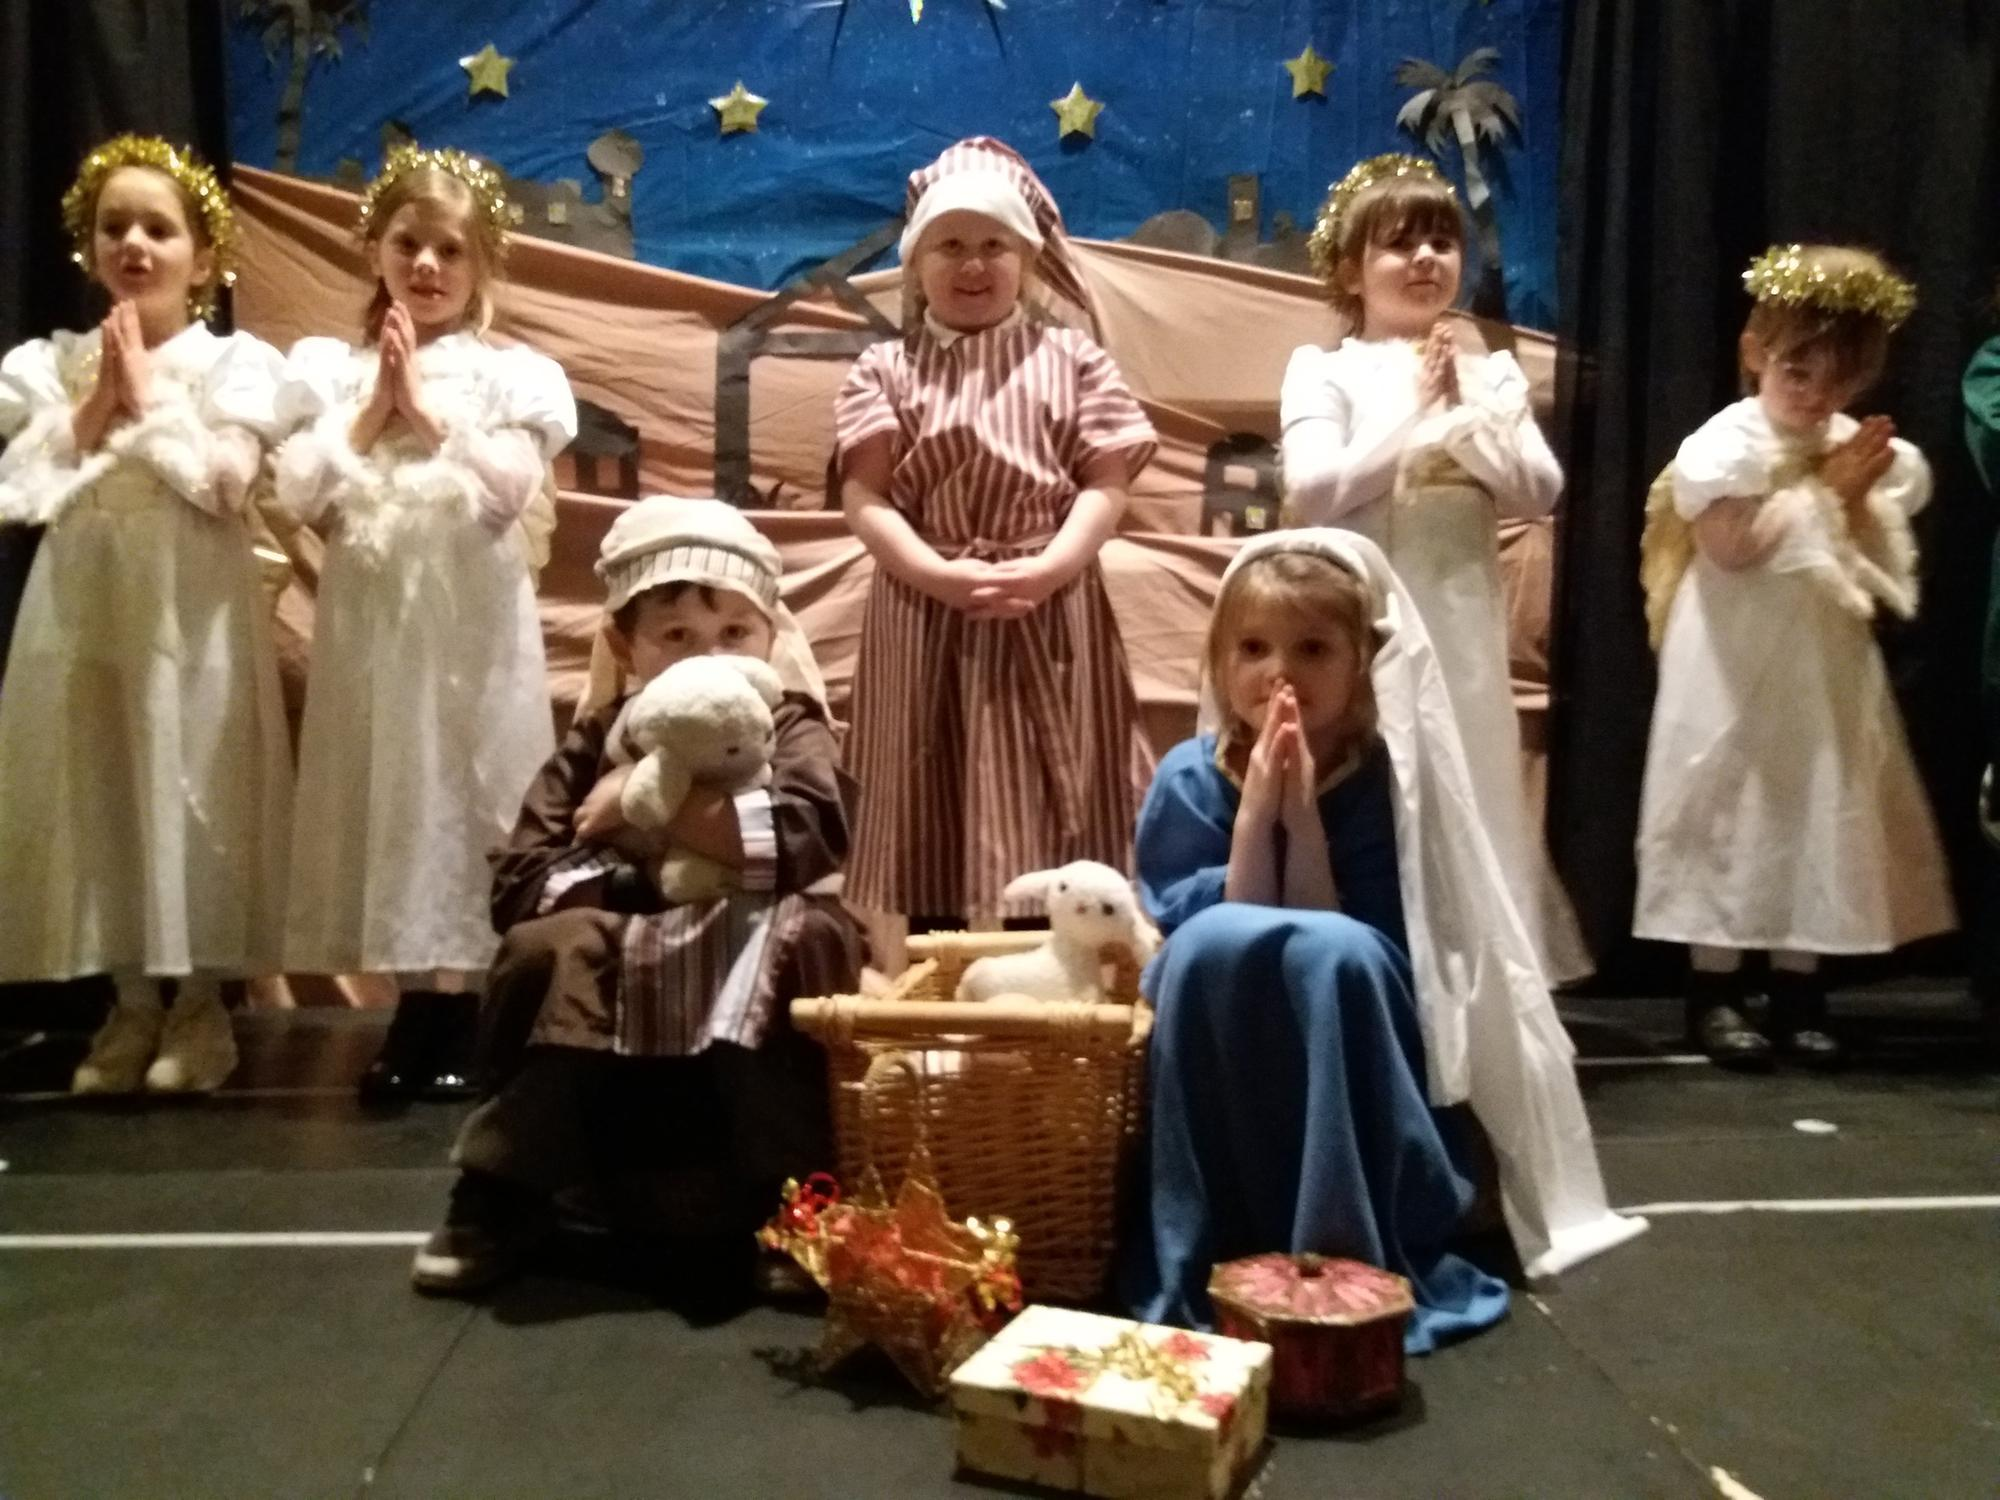 Parents And Staff Call For Clarity Over Confusing Guidance On Kids Singing In Nursery Ahead Of Traditional Nativity Plays Edinburgh News